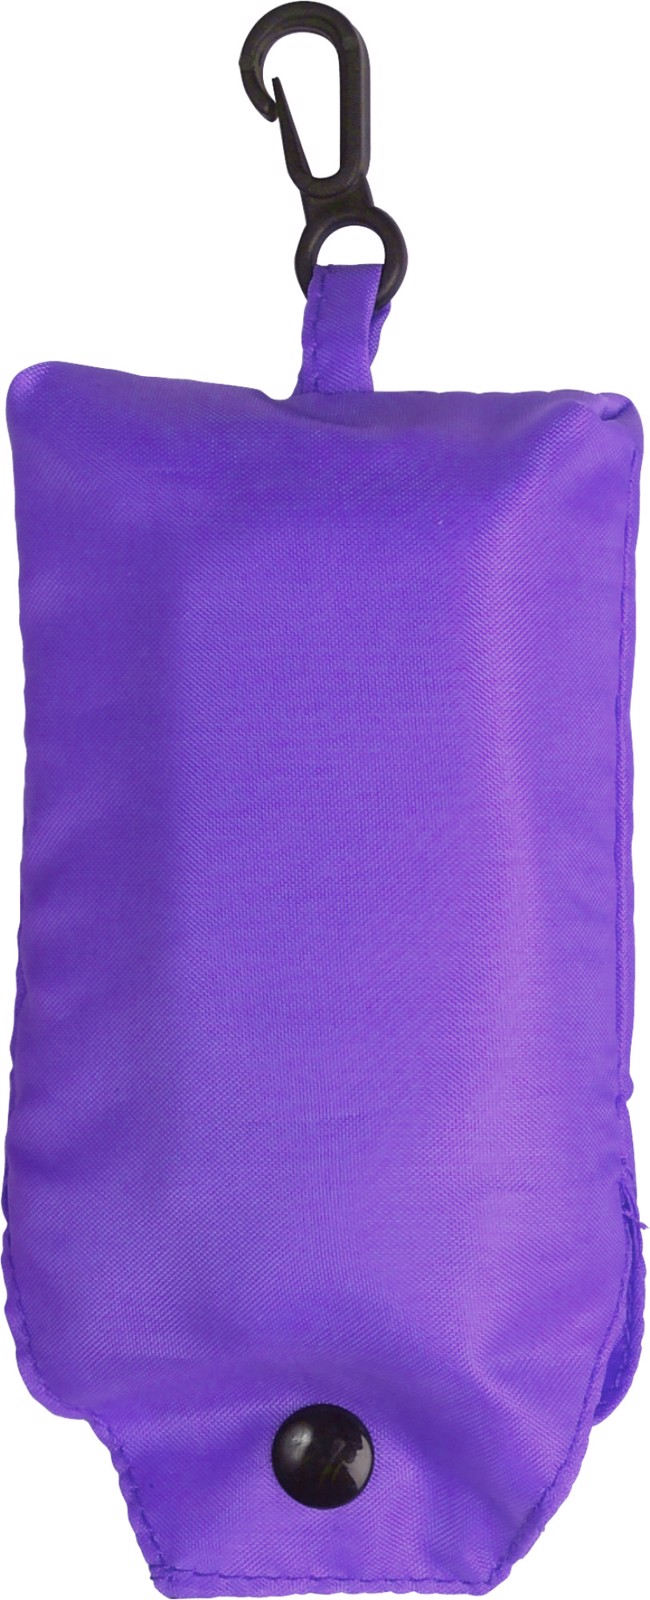 Polyester (190T) shopping bag - Purple